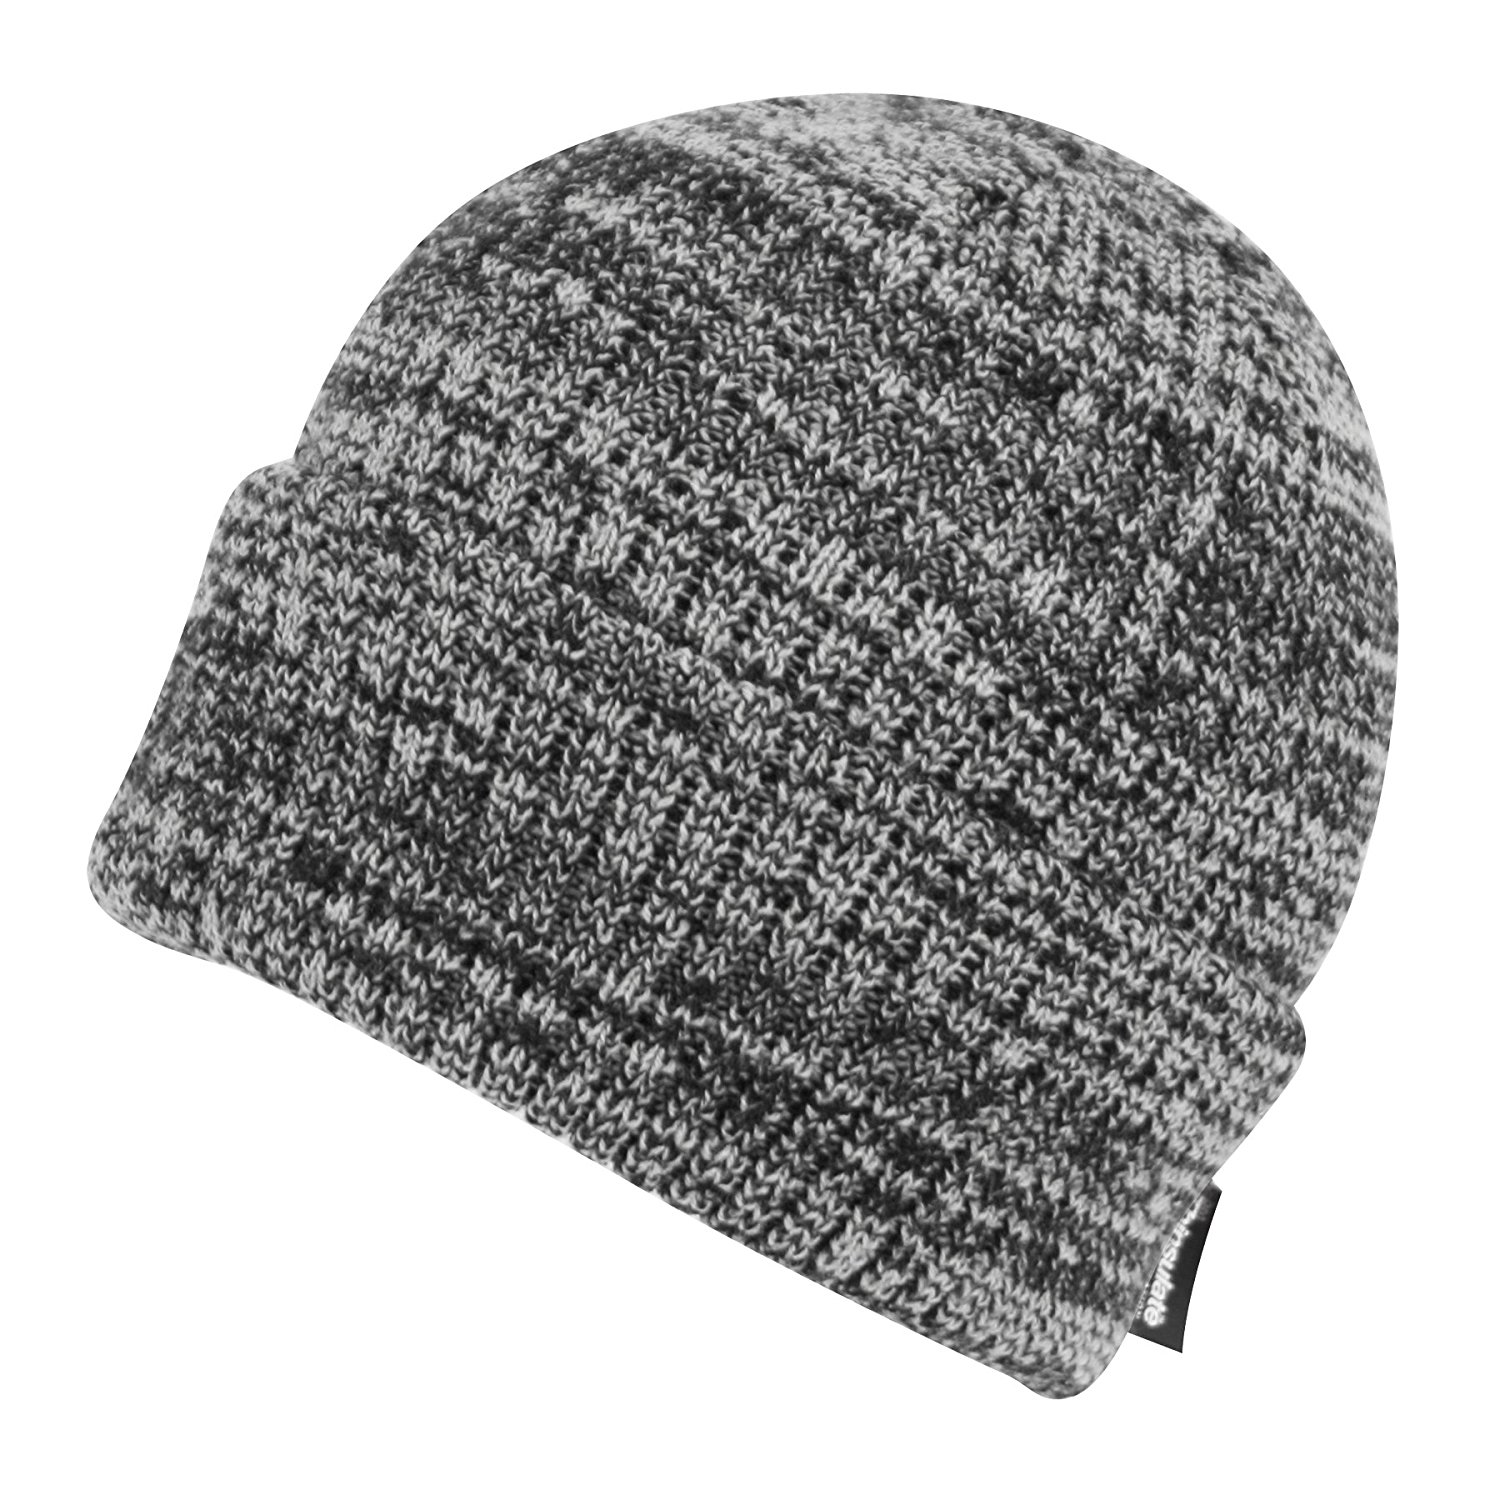 Thinsulate BN2388 Winter Hats 40 Gram Insulated Cuffed Winter Hat (BN2389DK Gray)